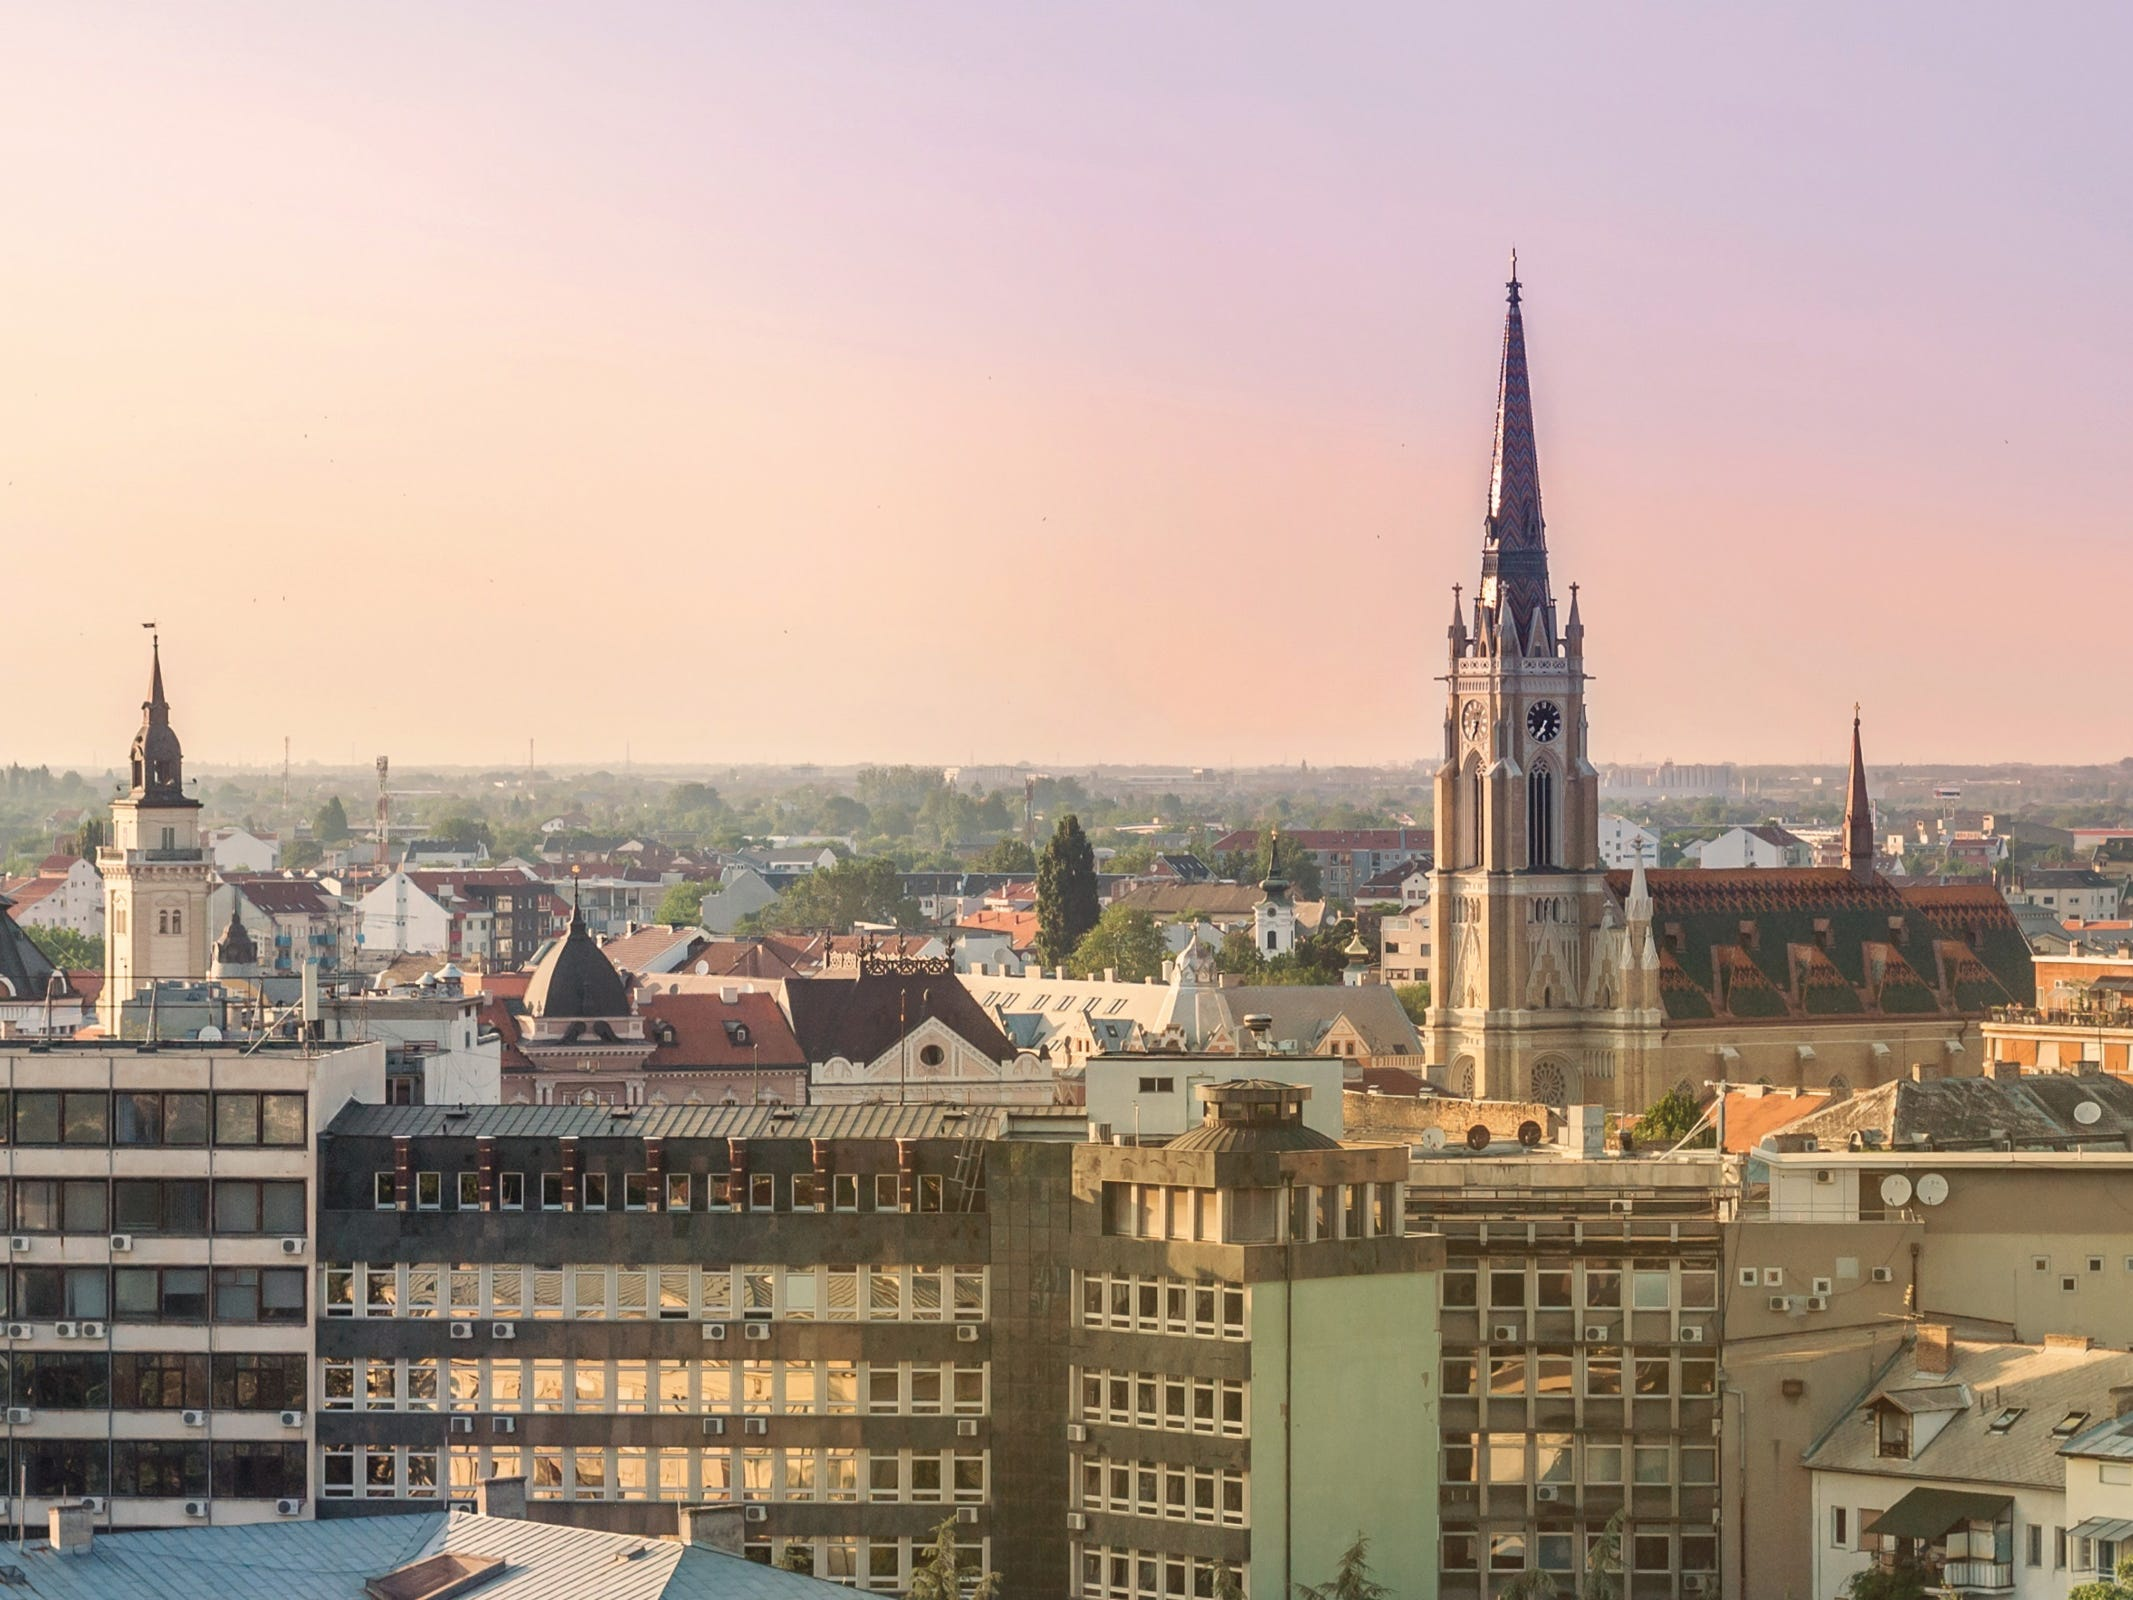 No. 3 on the list of top 10 cities to visit in 2019 is Novi Sad, Serbia. Basking in the limelight of EXIT festival's two epic decades, Novi Sad is bursting with creative energy and alternative culture.